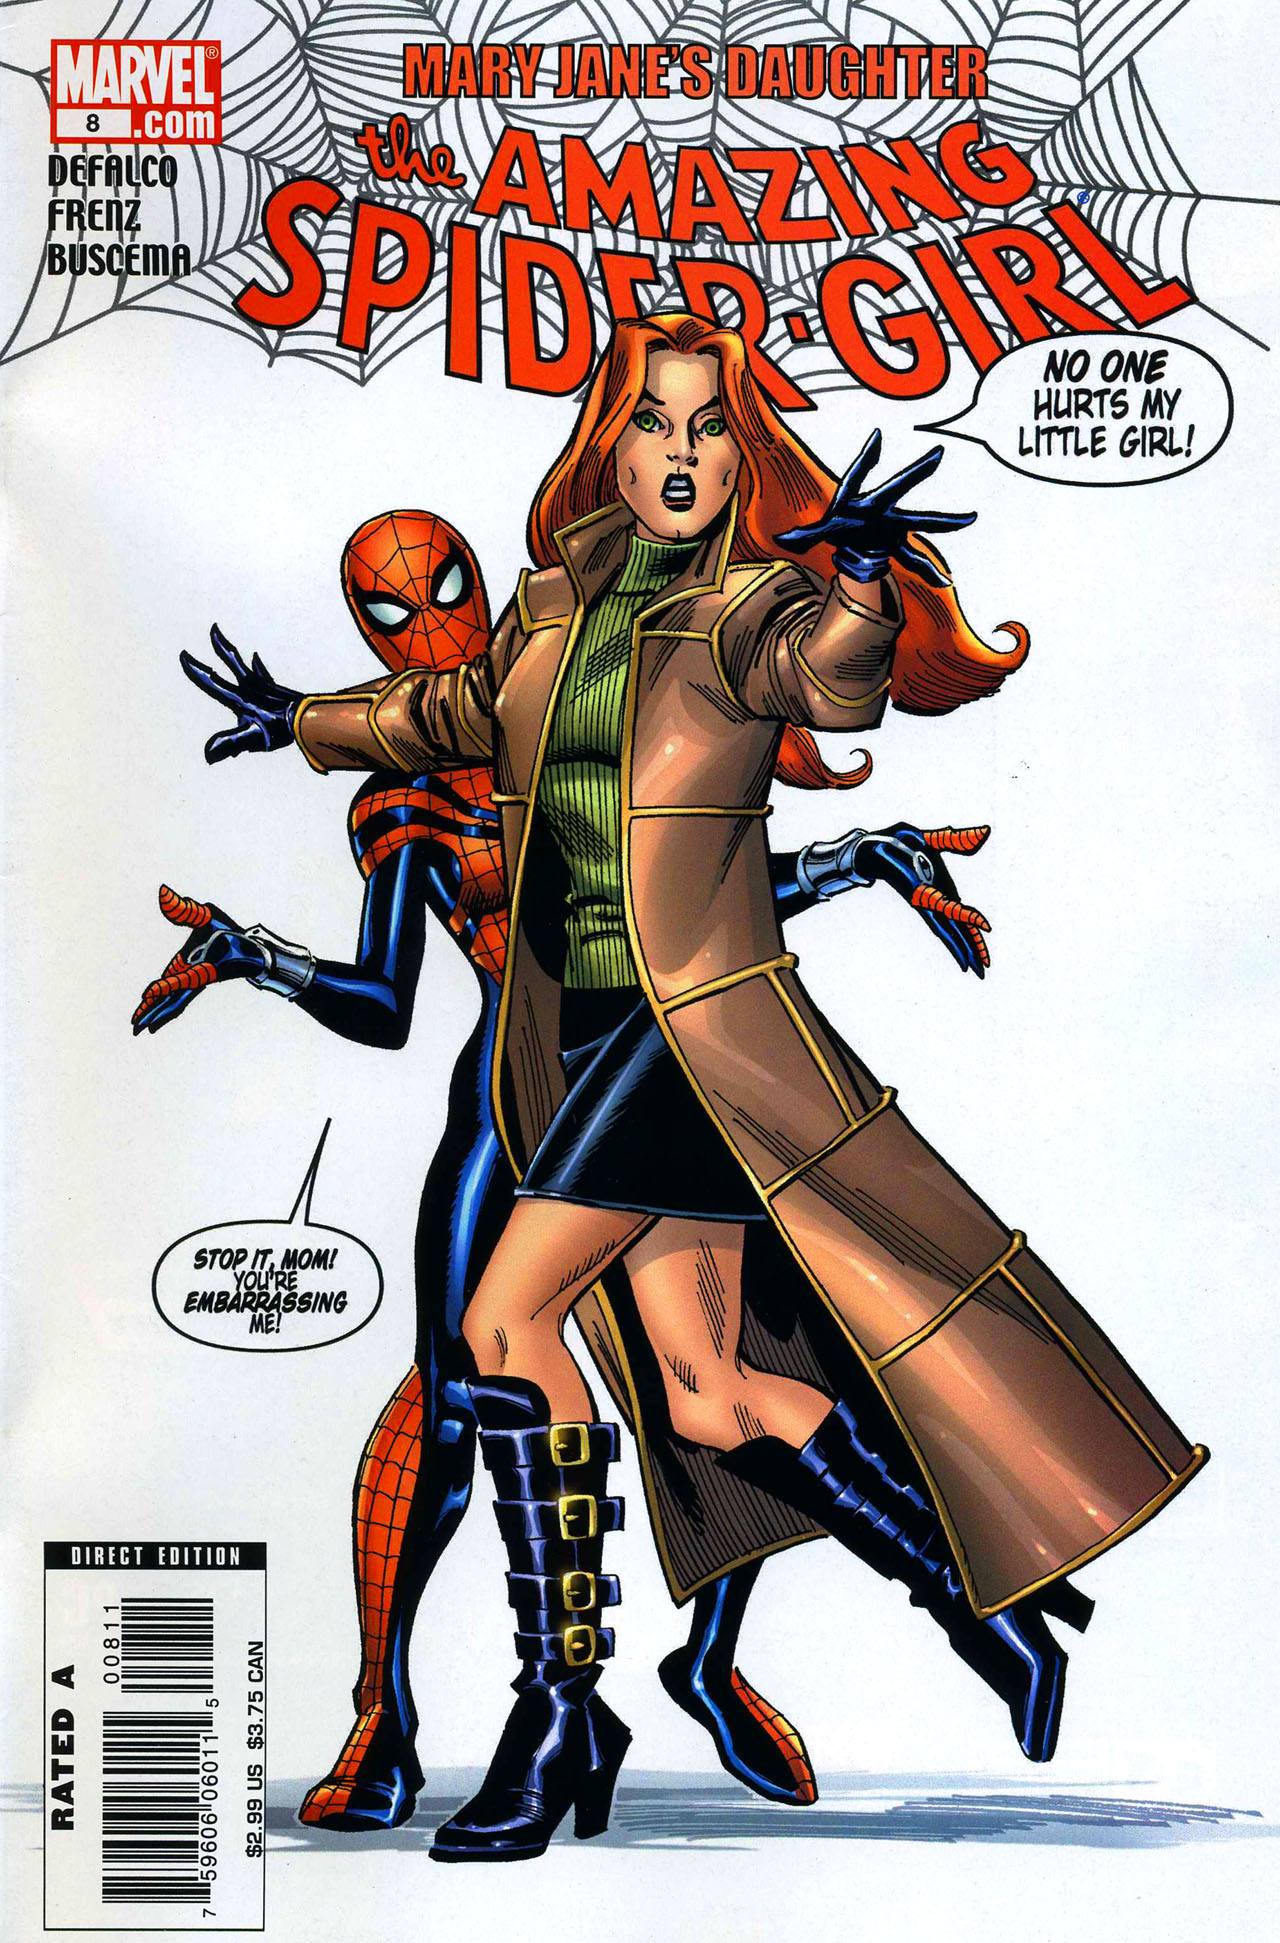 Amazing Spider-Girl 8 Page 1